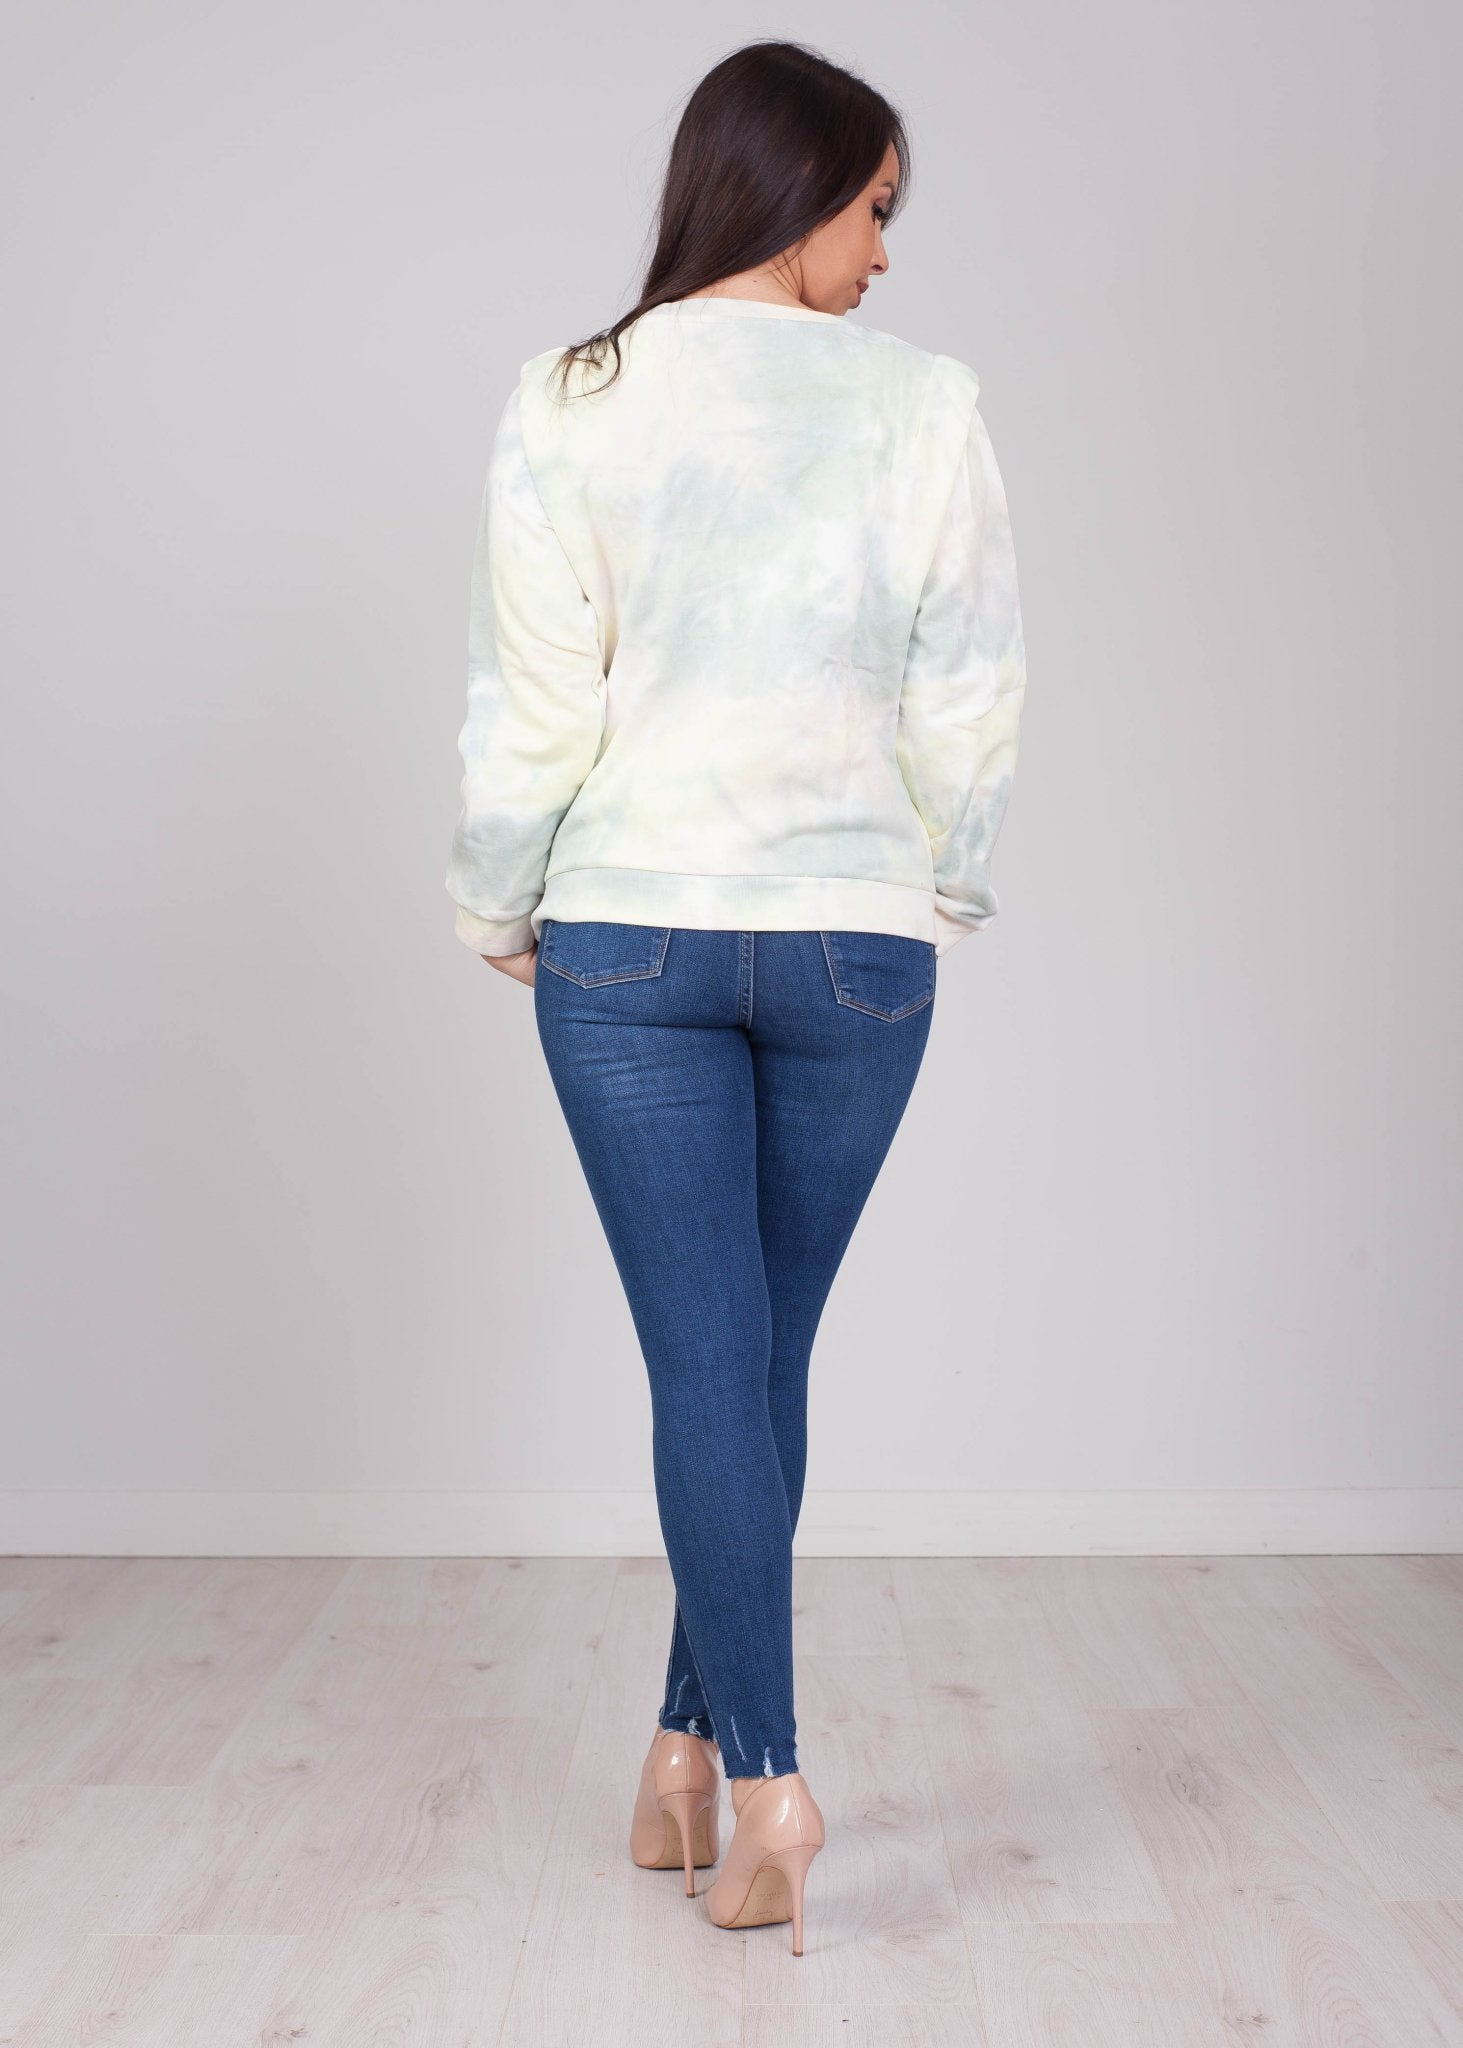 Daisy Green Tie Dye Jumper - The Walk in Wardrobe